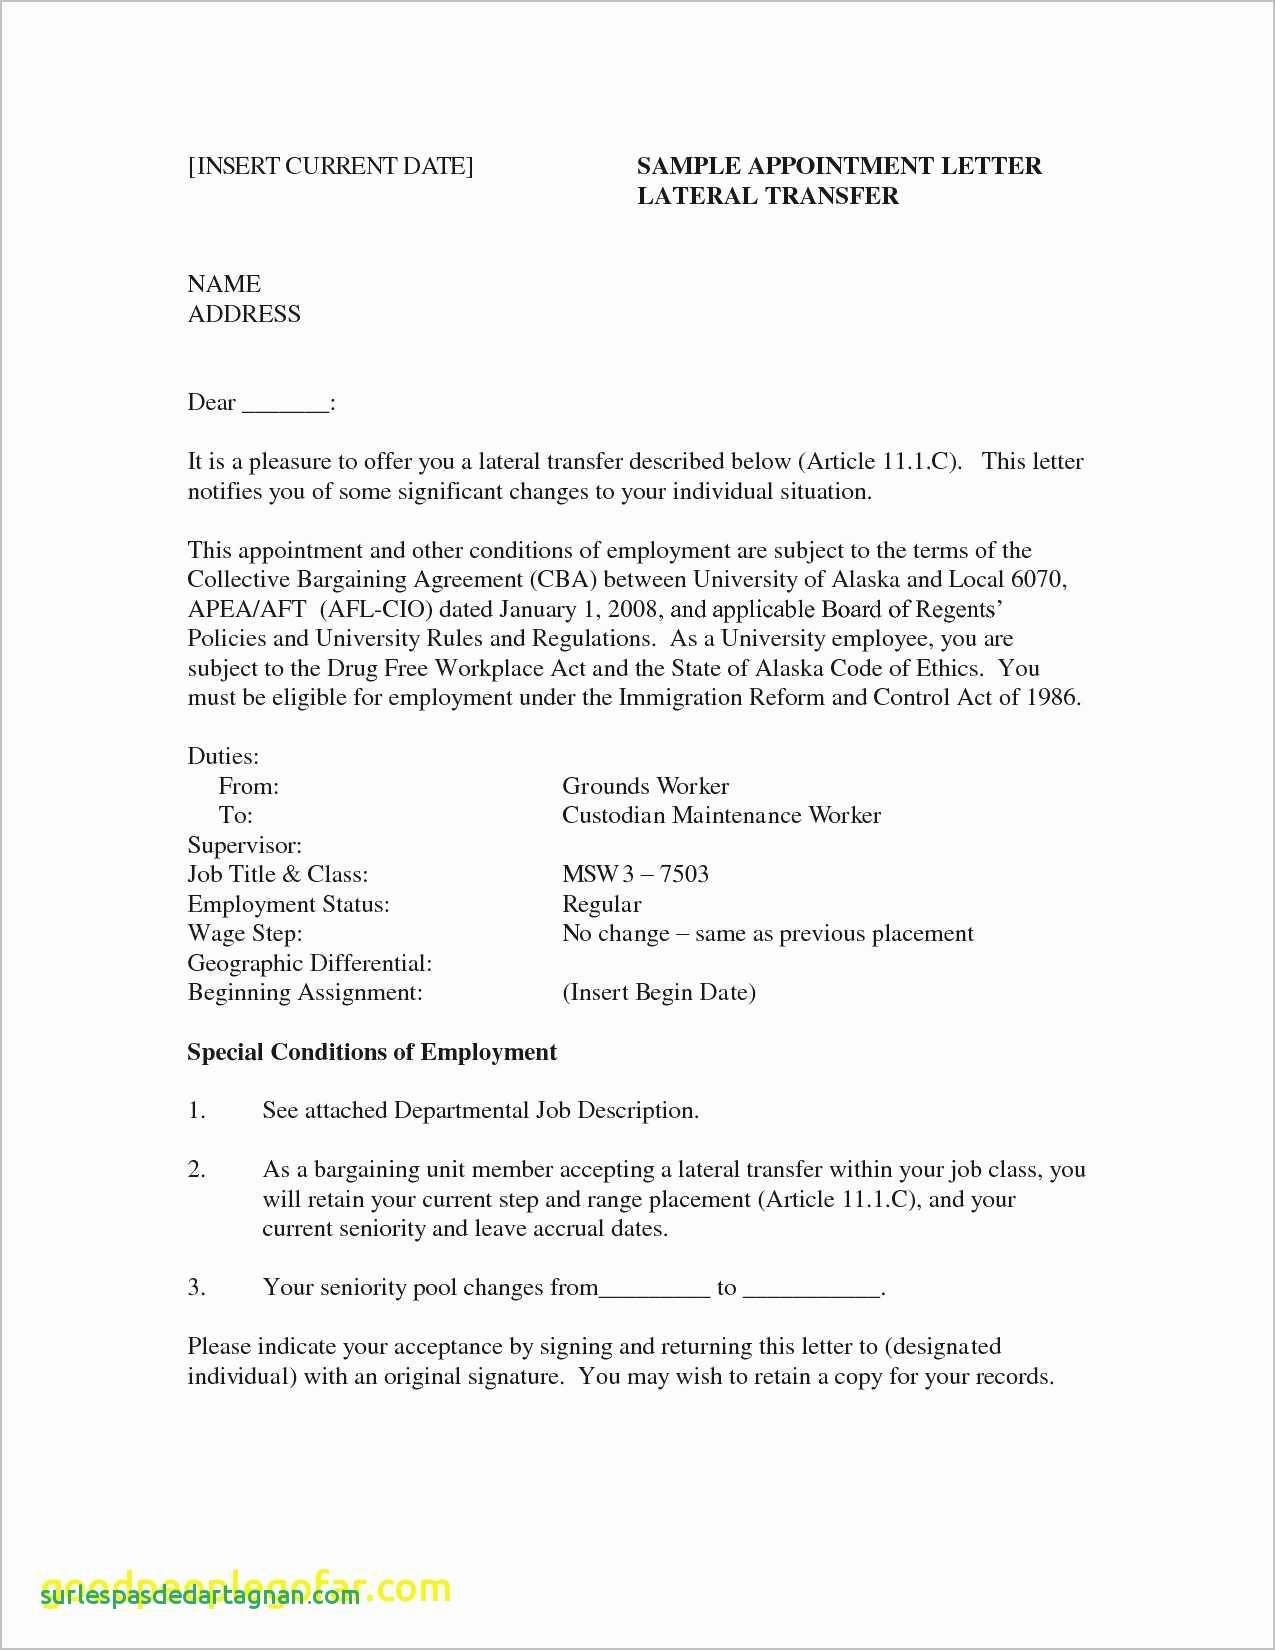 voe letter template example-Voe Template Inspirational Best Resume Maker Awesome Resume Maker 0d Unique Article Summary 18-k